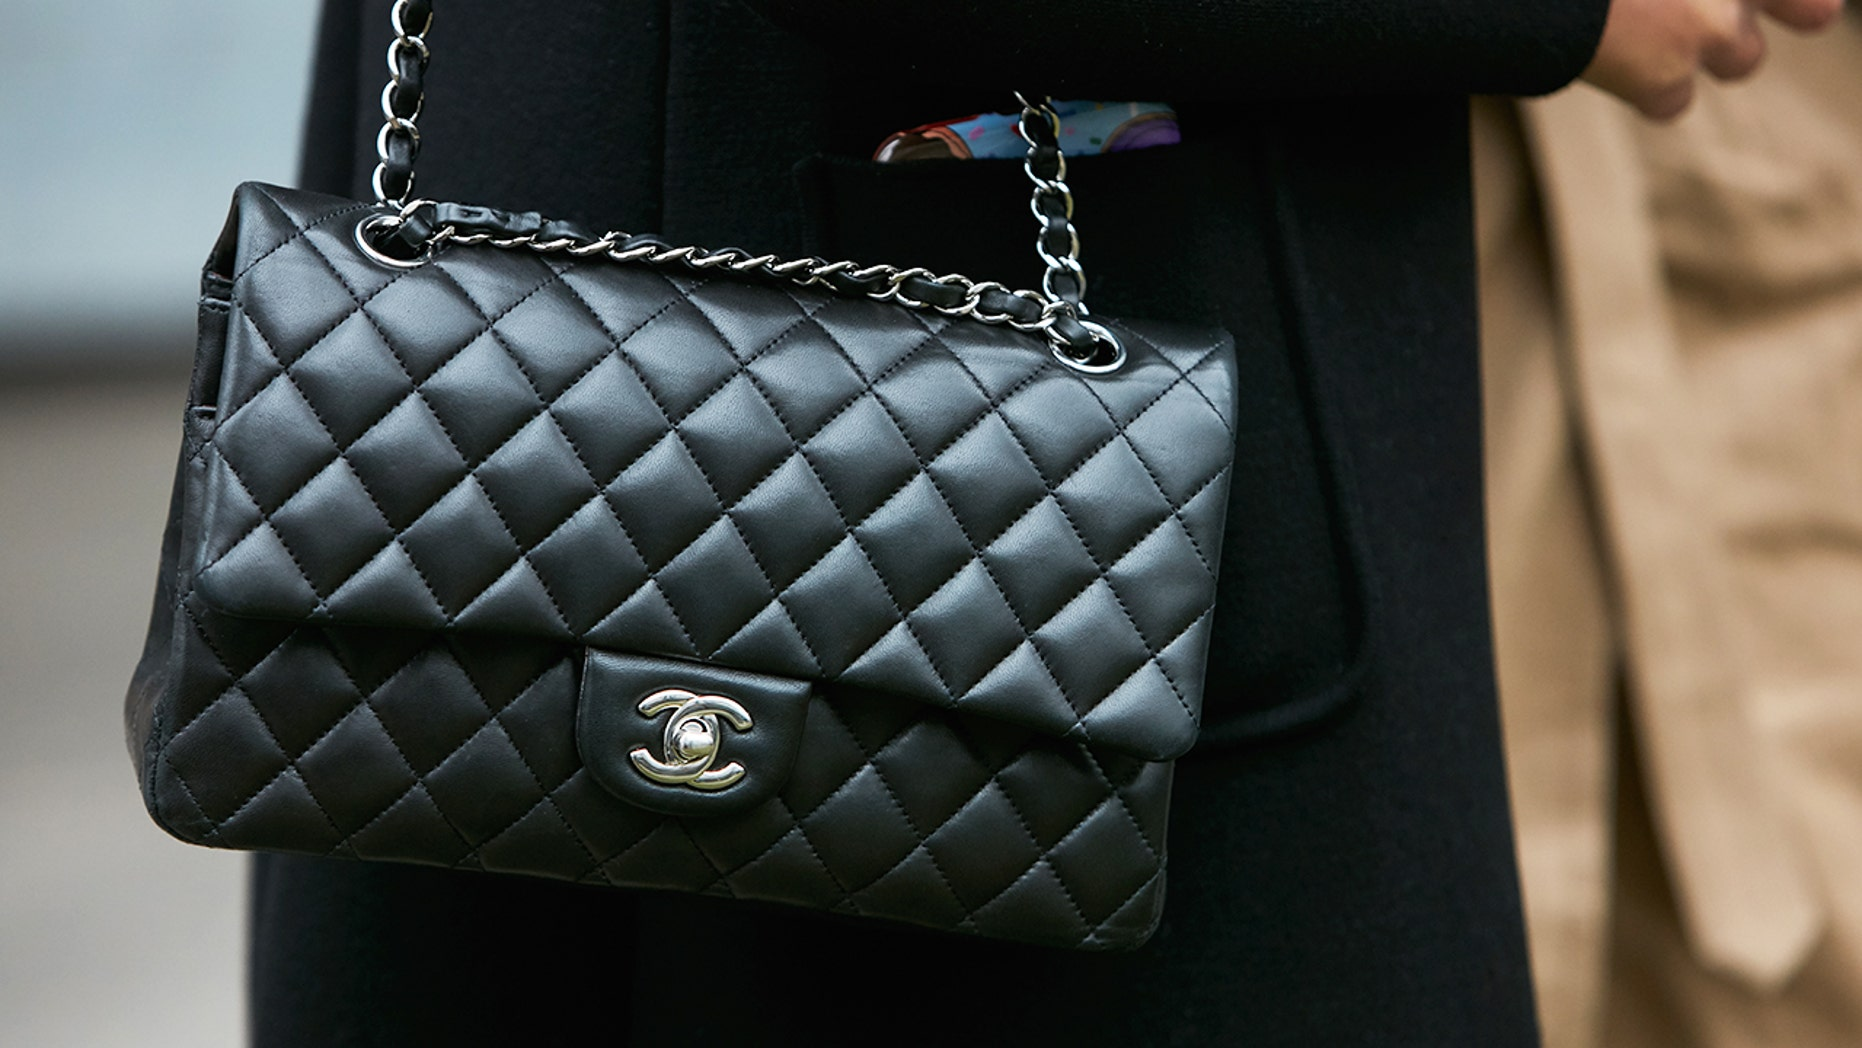 """A handbag entrepreneur's """"money diary"""" has gone viral, and not in a good way."""